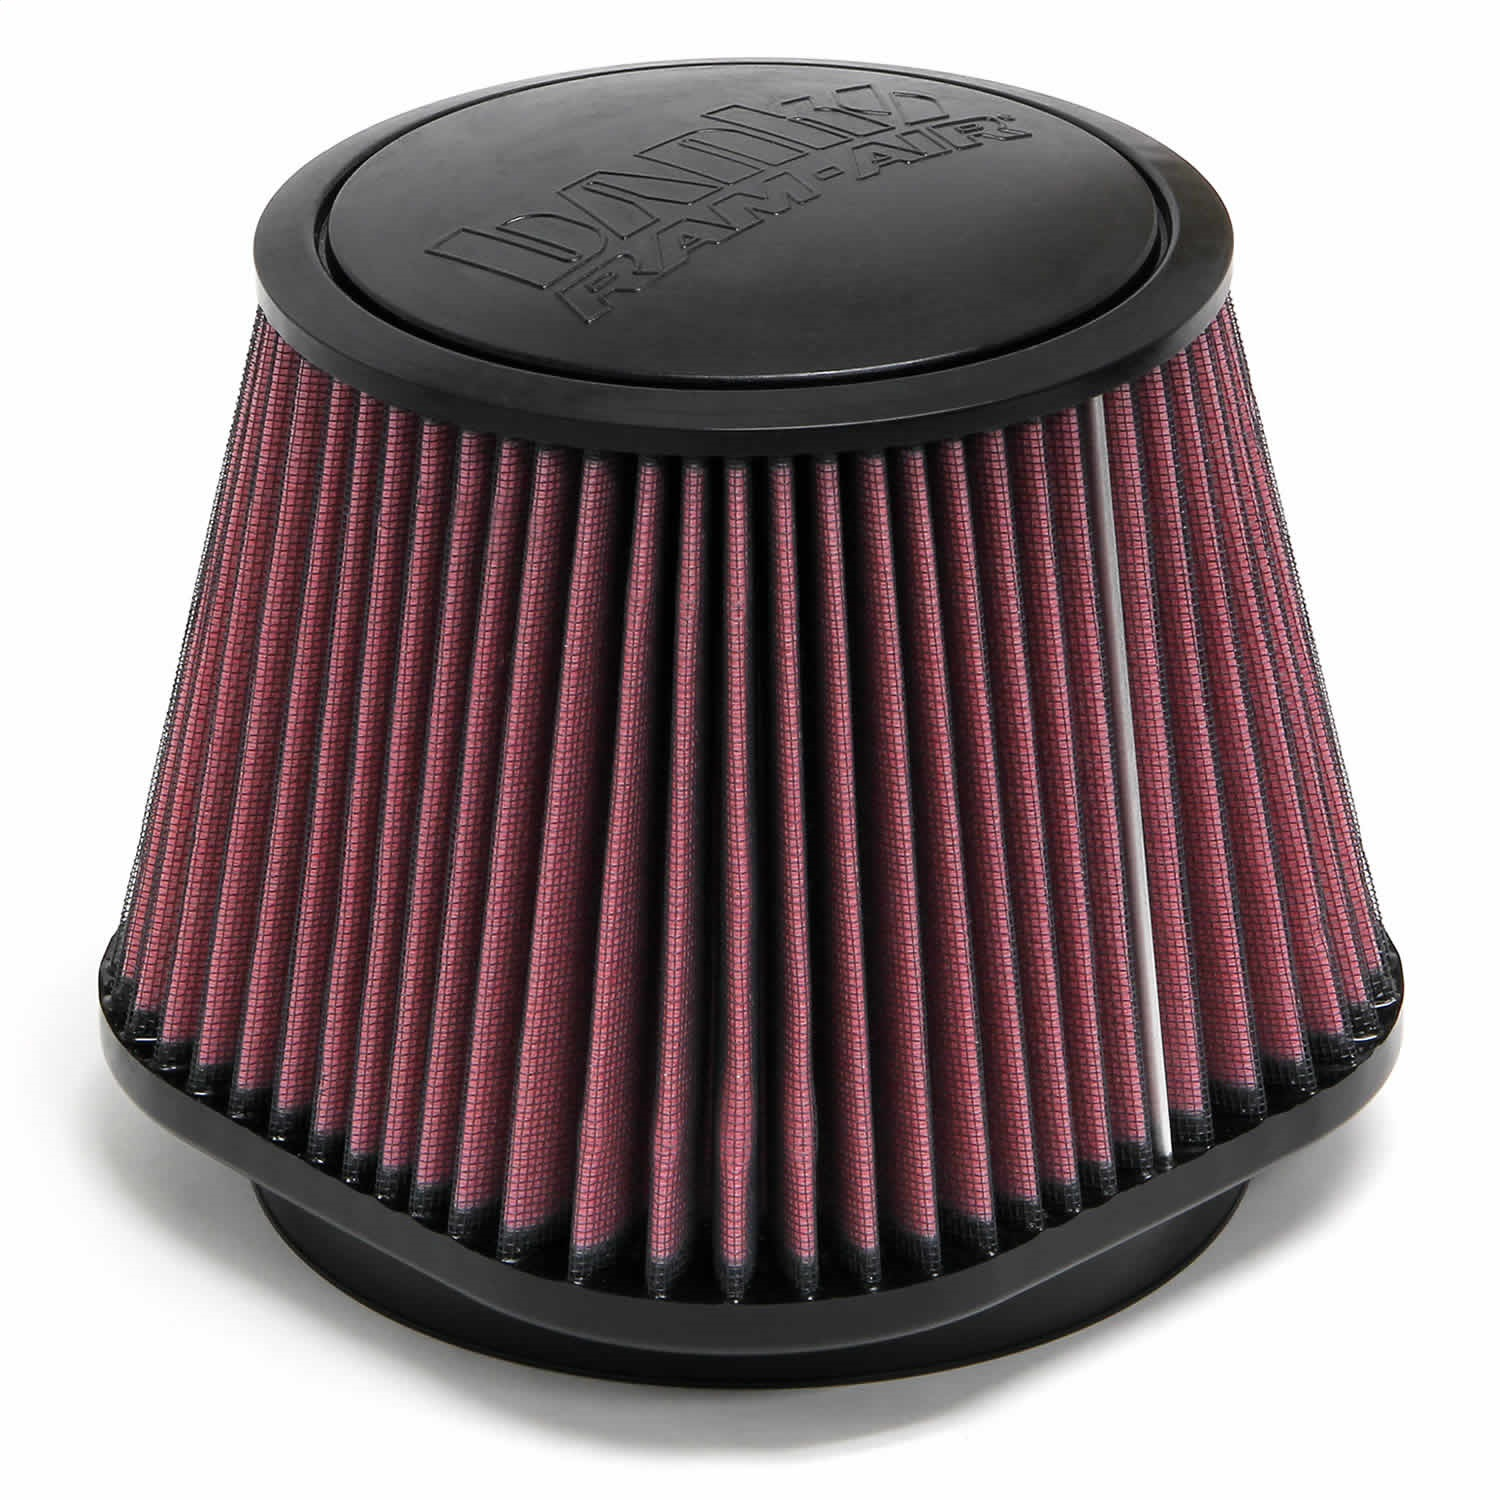 Banks Power 42148 Air Filter Fits 03-07 Ram 2500 Ram 3500